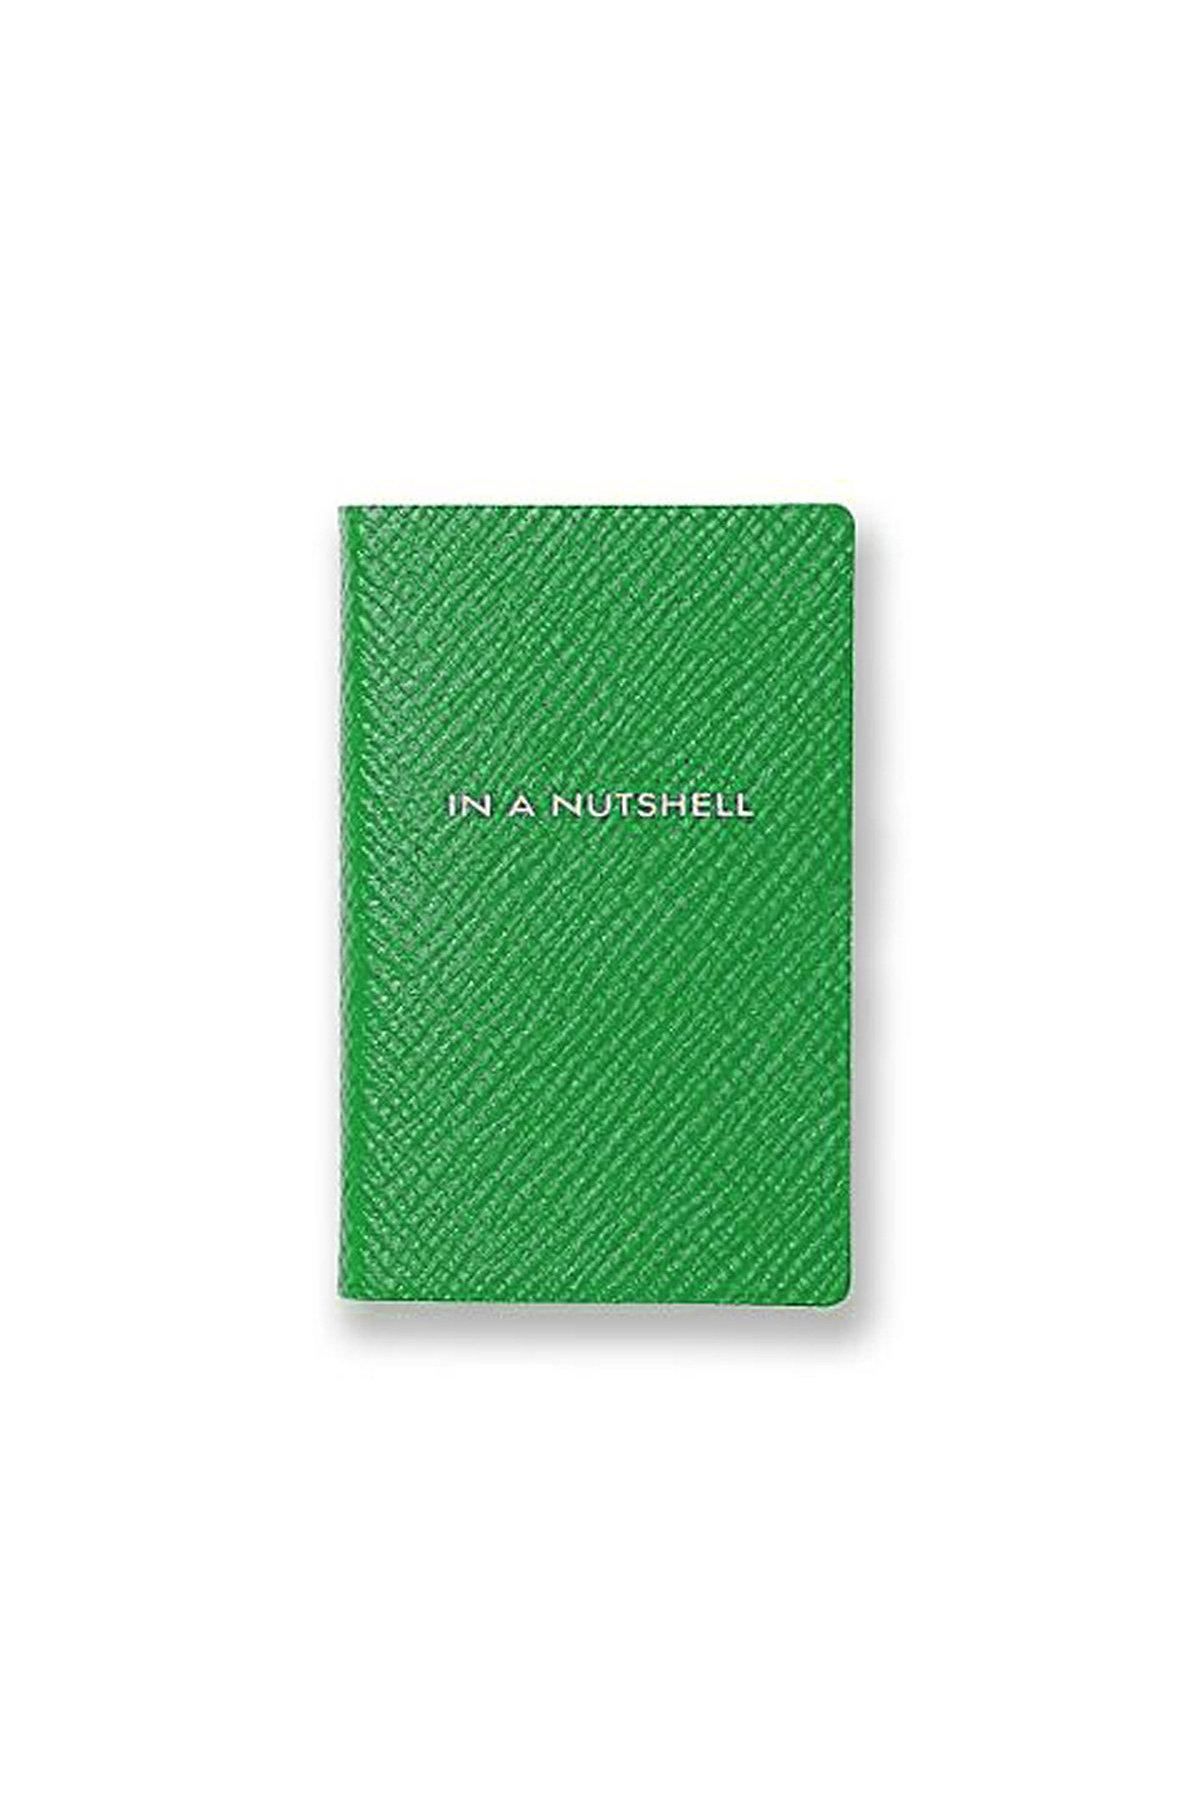 Smythson In A Nutshell Leather Book In Green